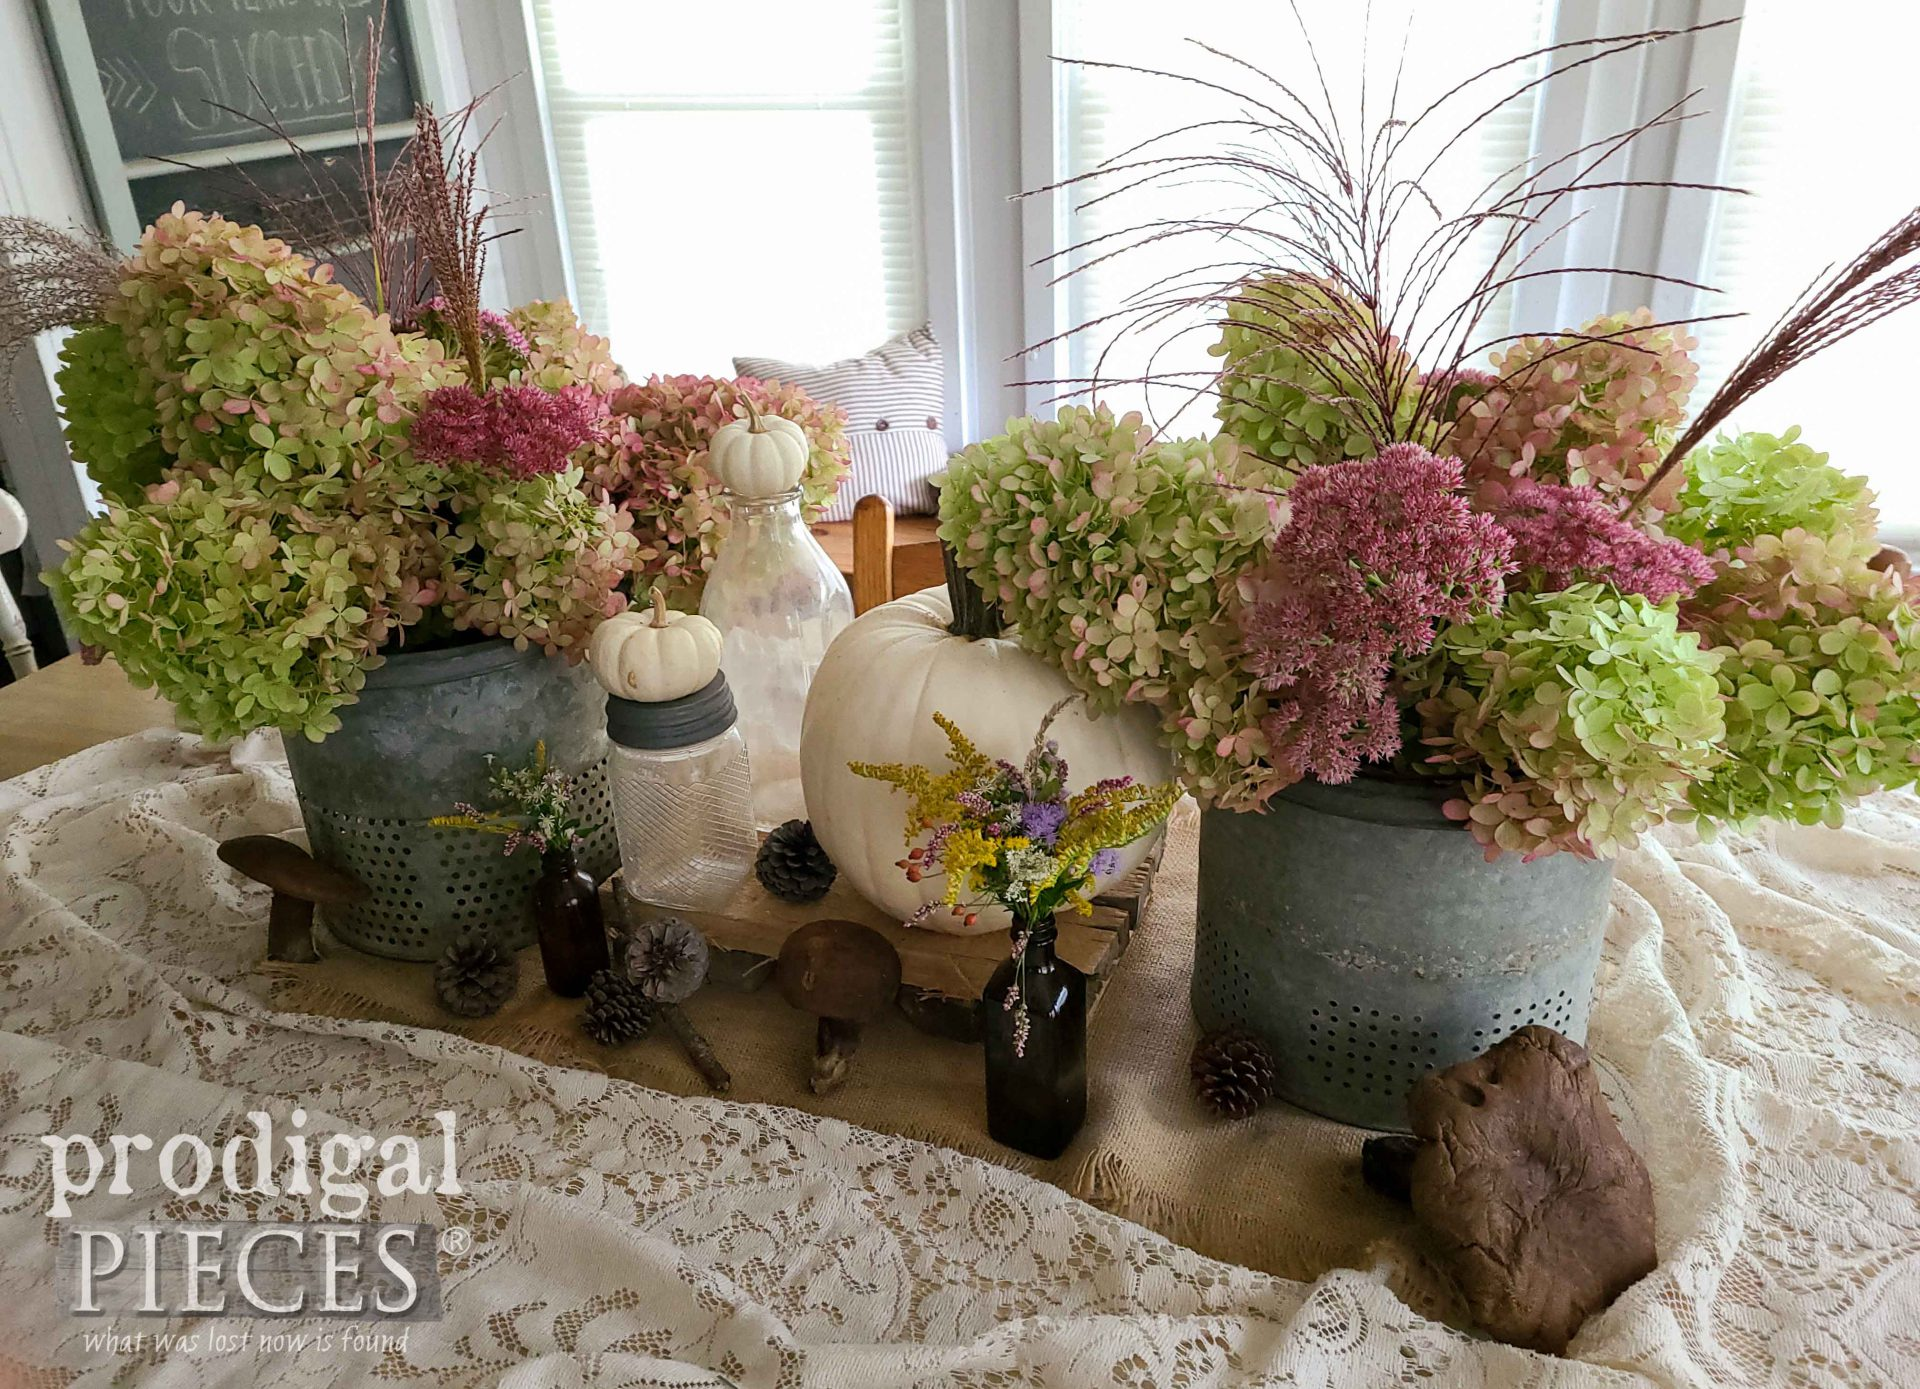 DIY Autumn Tablescape by Larissa of Prodigal Pieces | prodigalpieces.com #prodigalpieces #fall #autumn #diy #home #homedecor